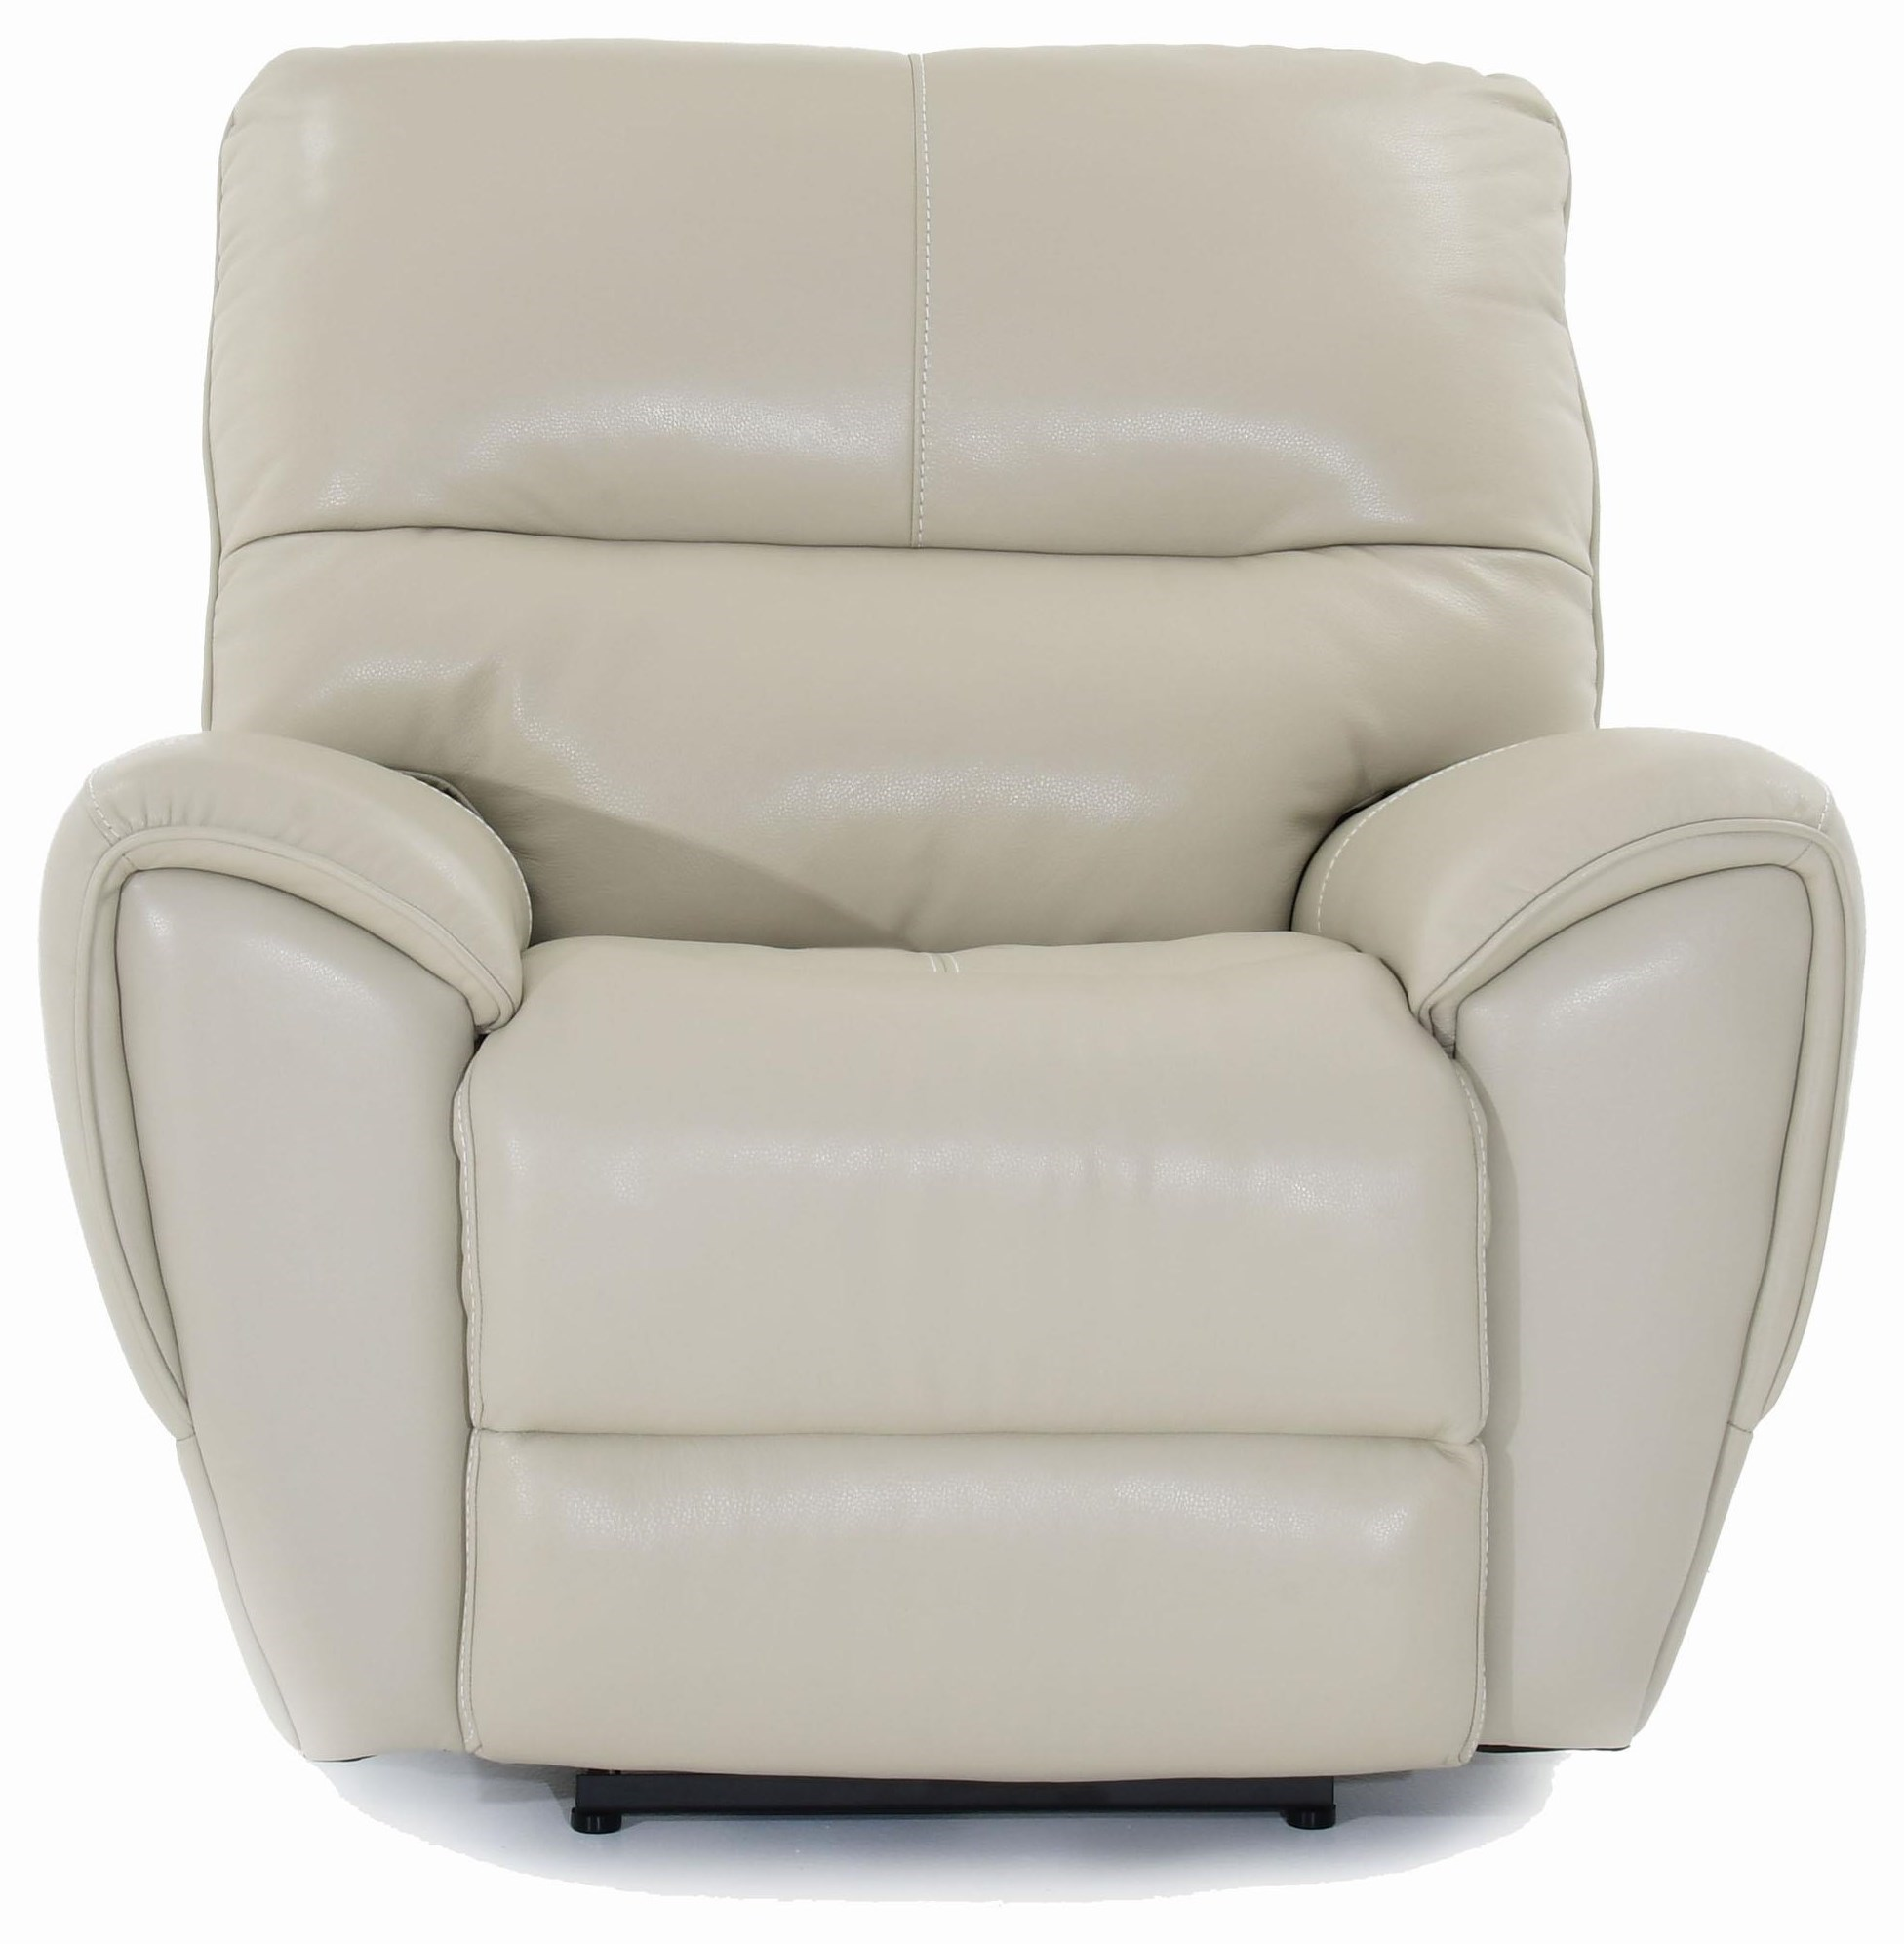 Casual Power Recliner with Power Headrest and USB Port